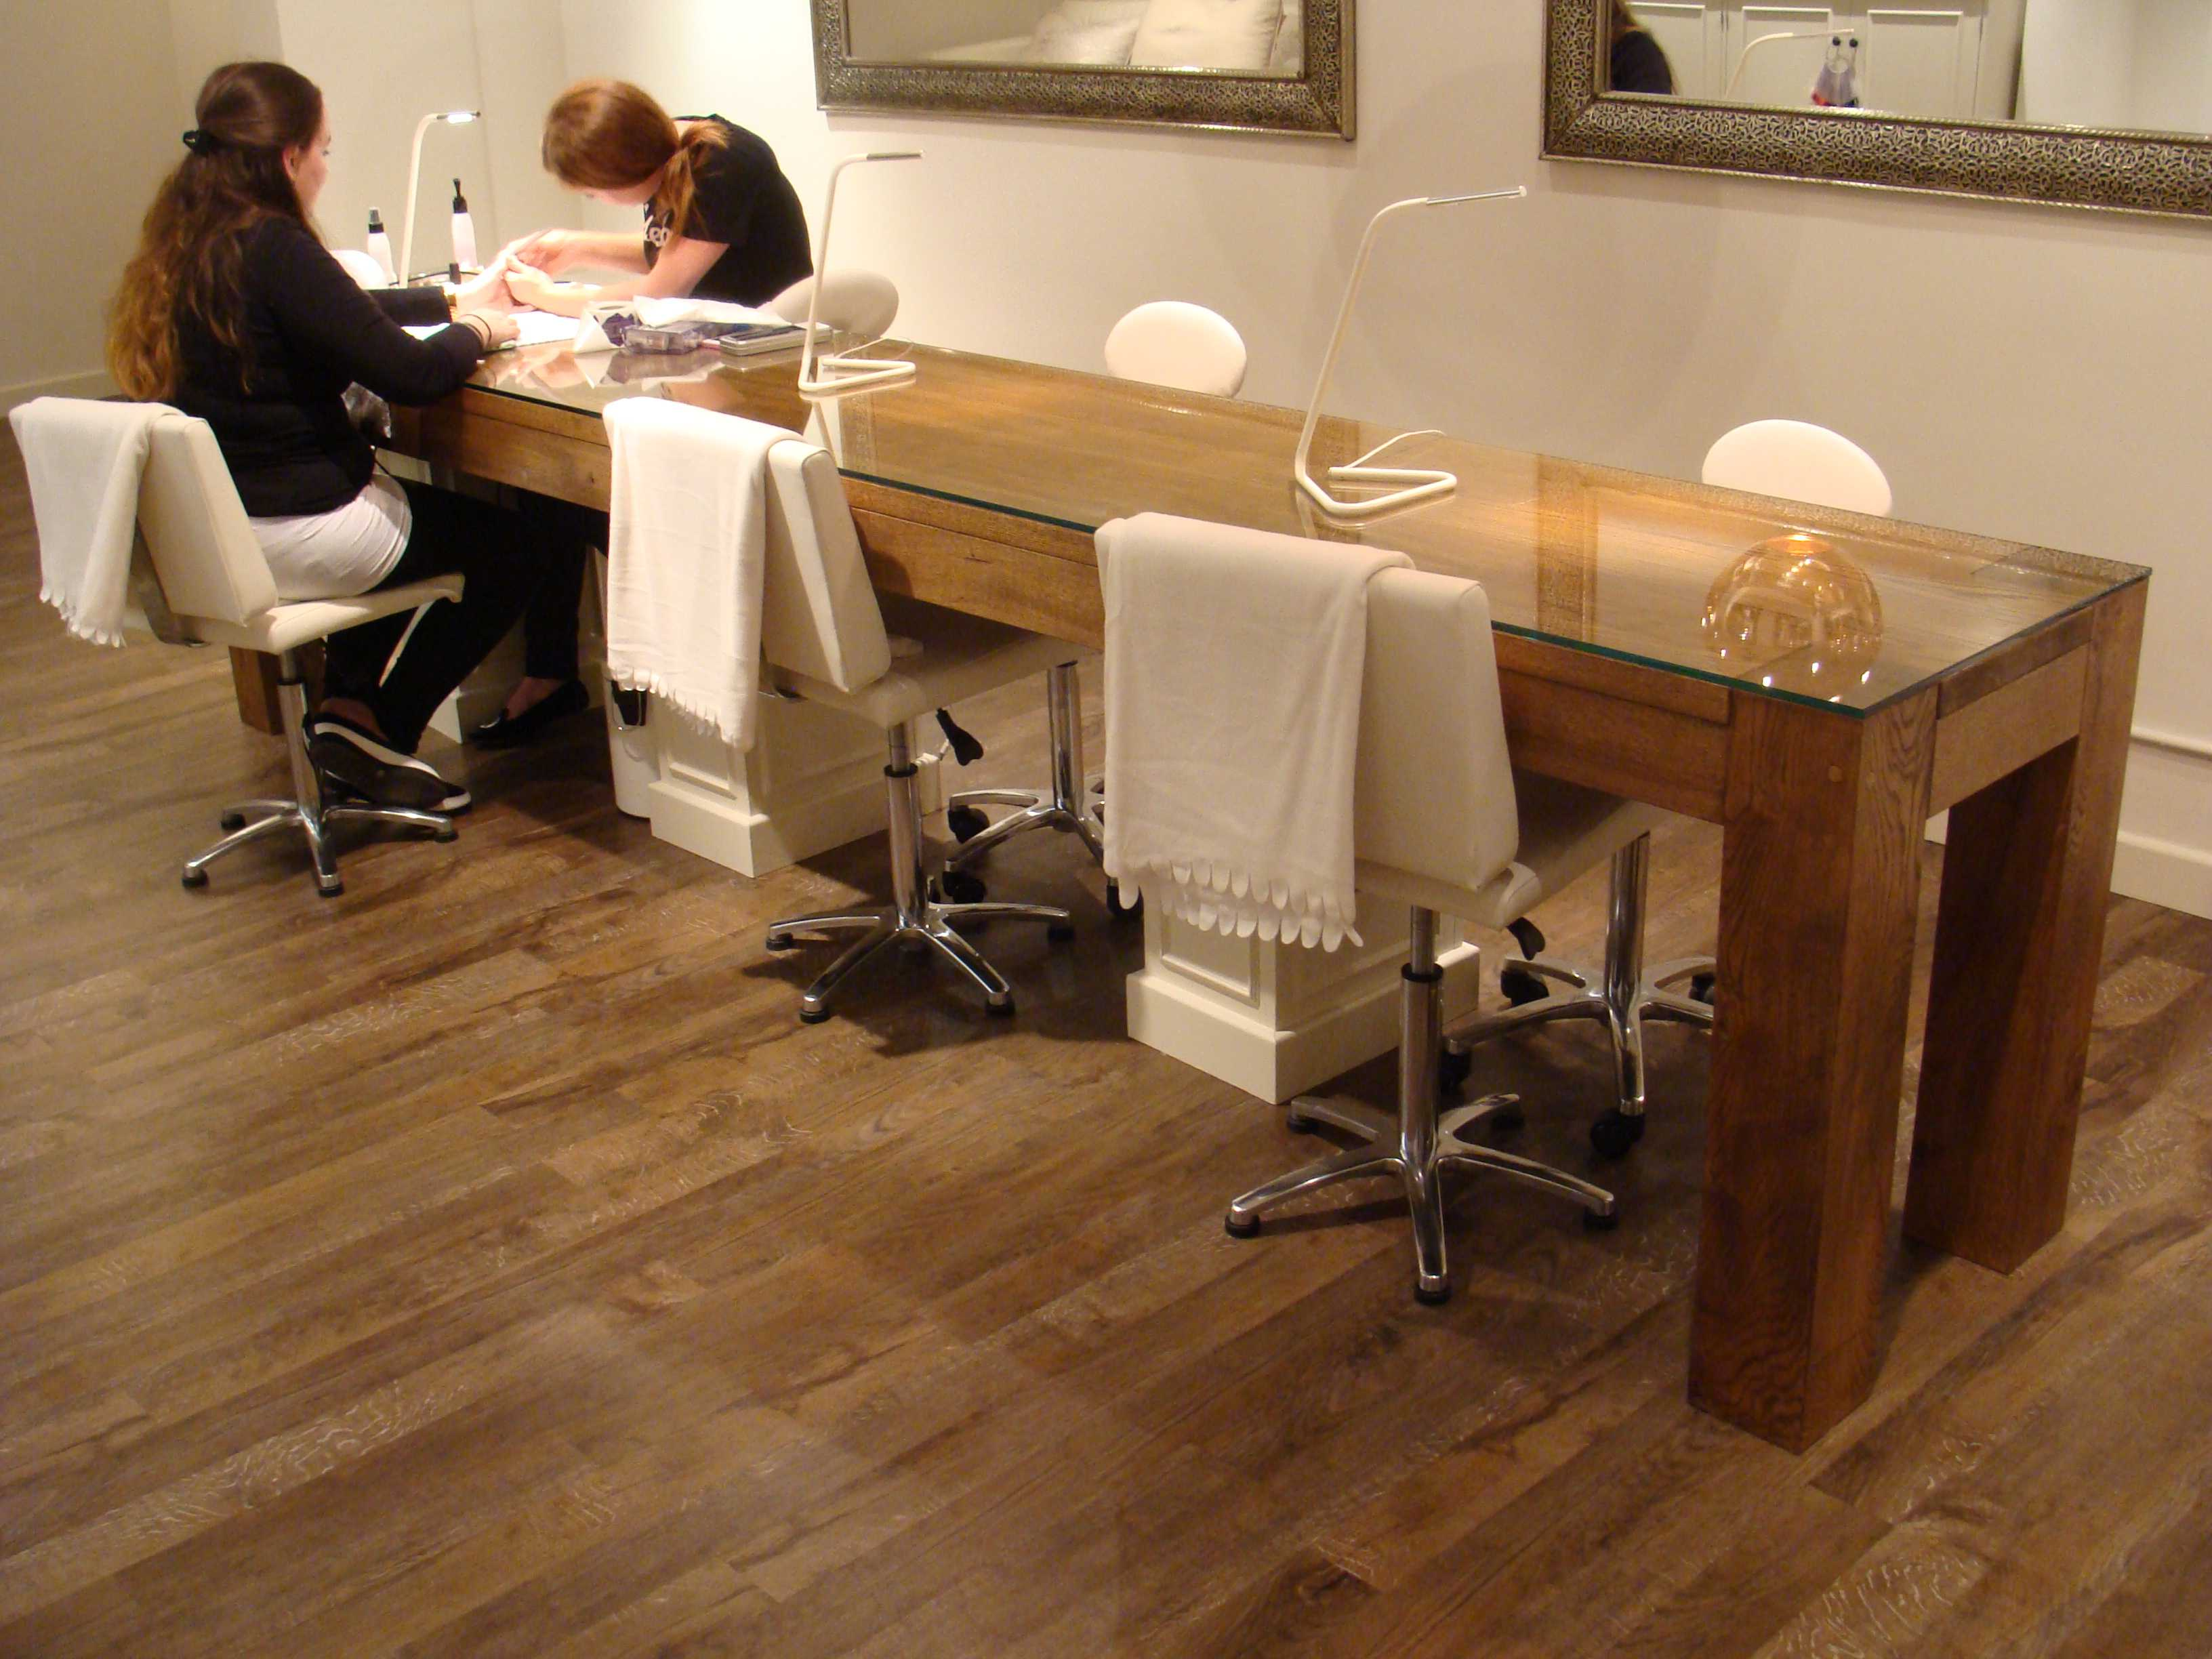 Nail bar furniture